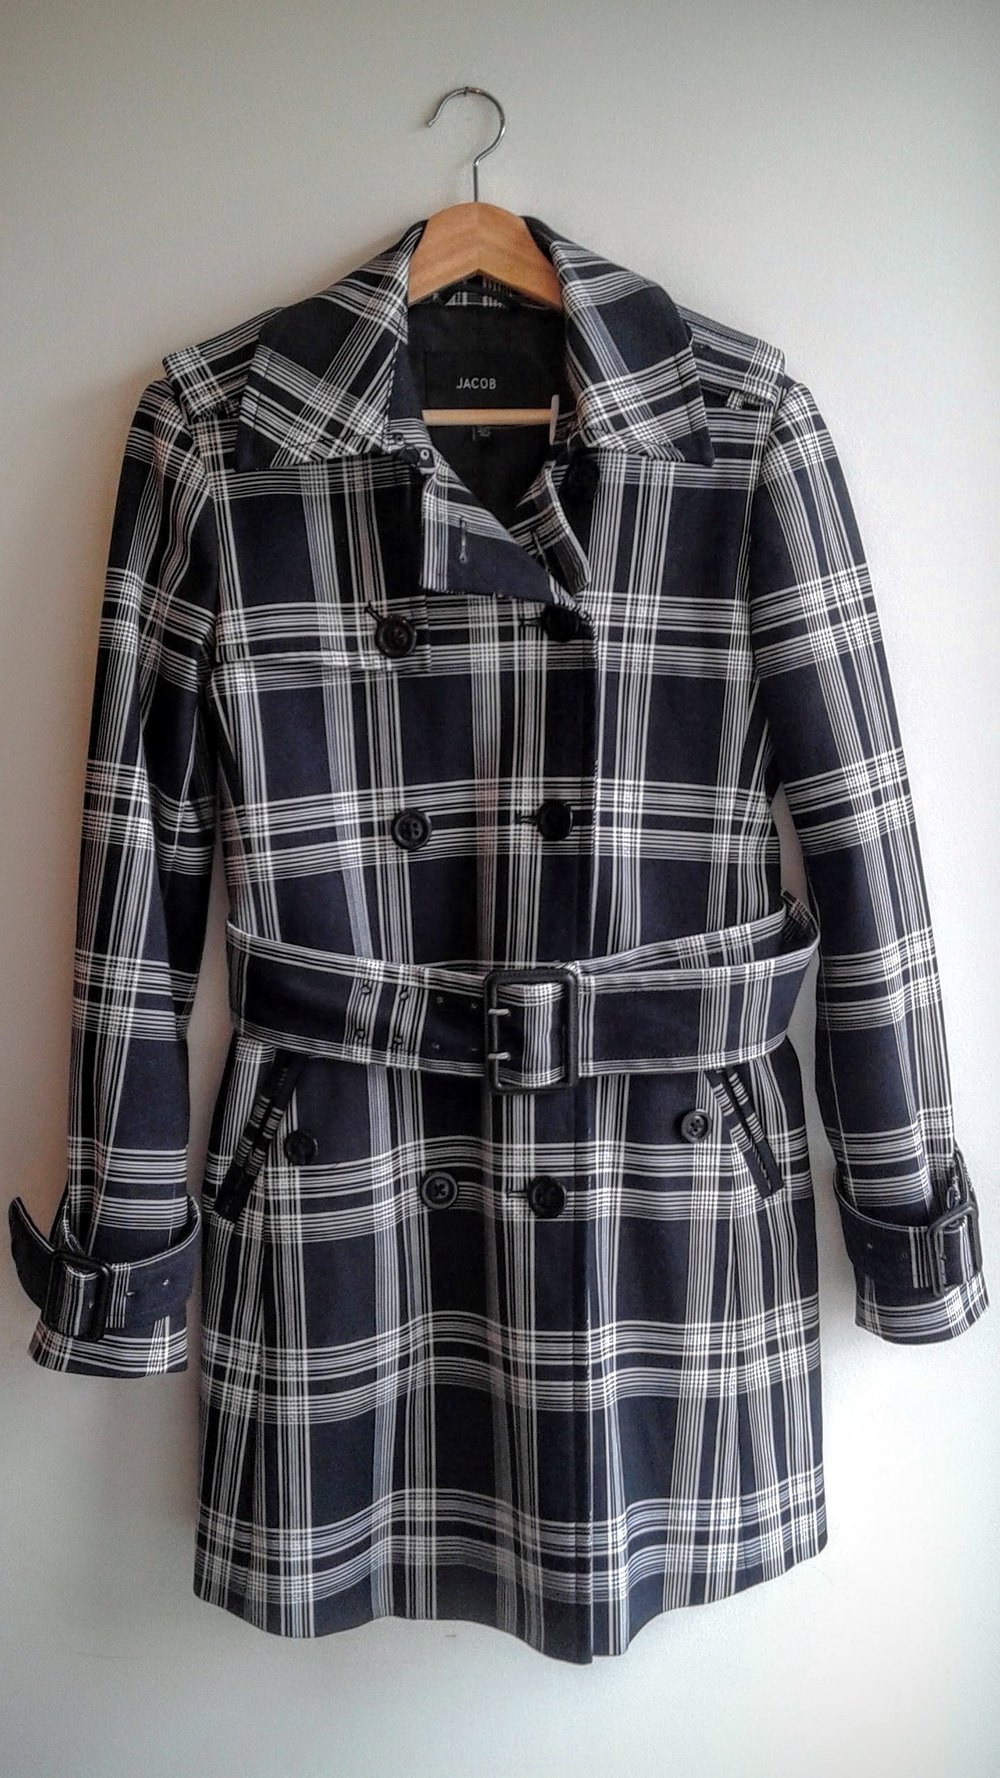 Jacob coat; Size S, $78